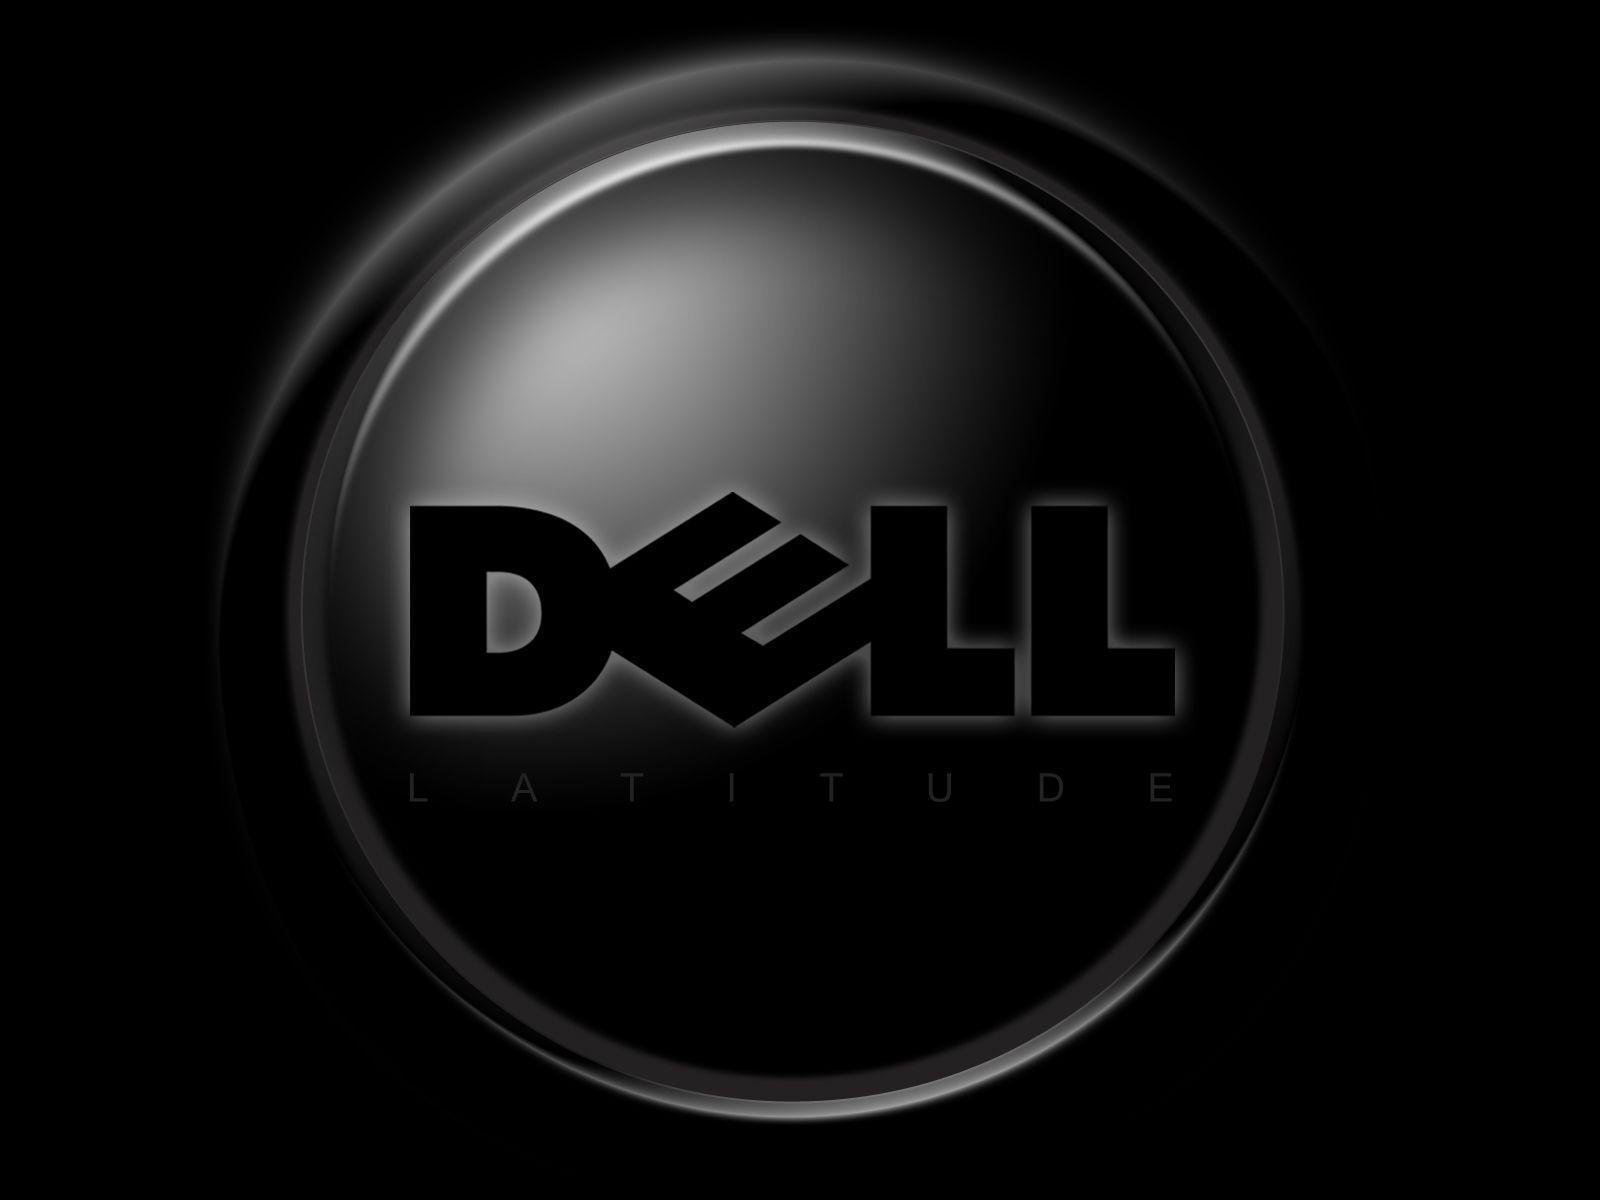 Dell Desktop Backgrounds Wallpaper Cave